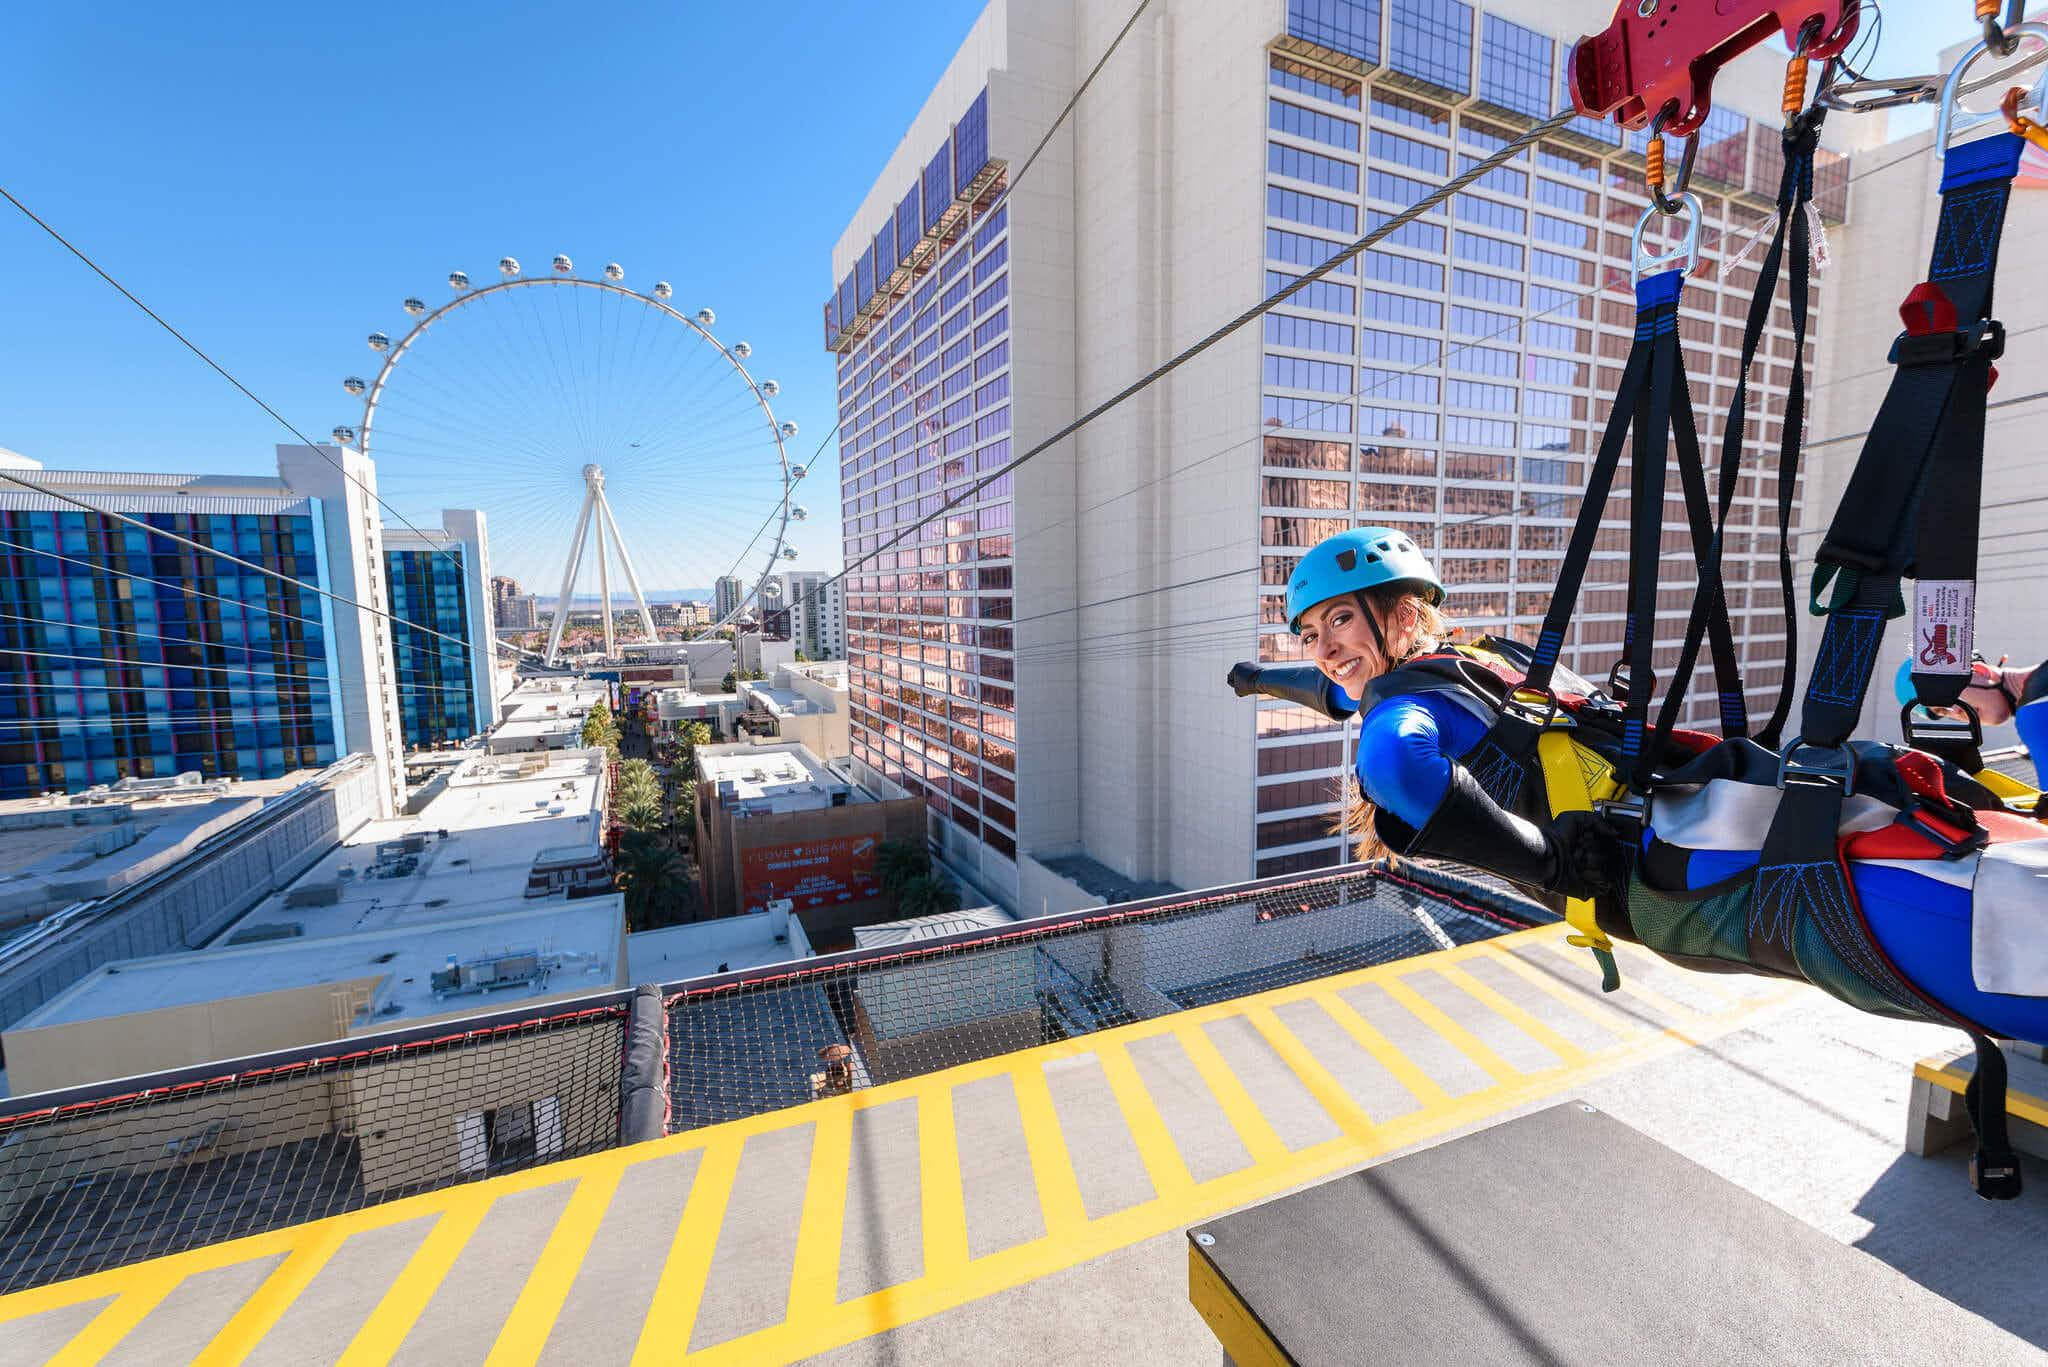 Soar above the Las Vegas strip like a superhero with its first zip line